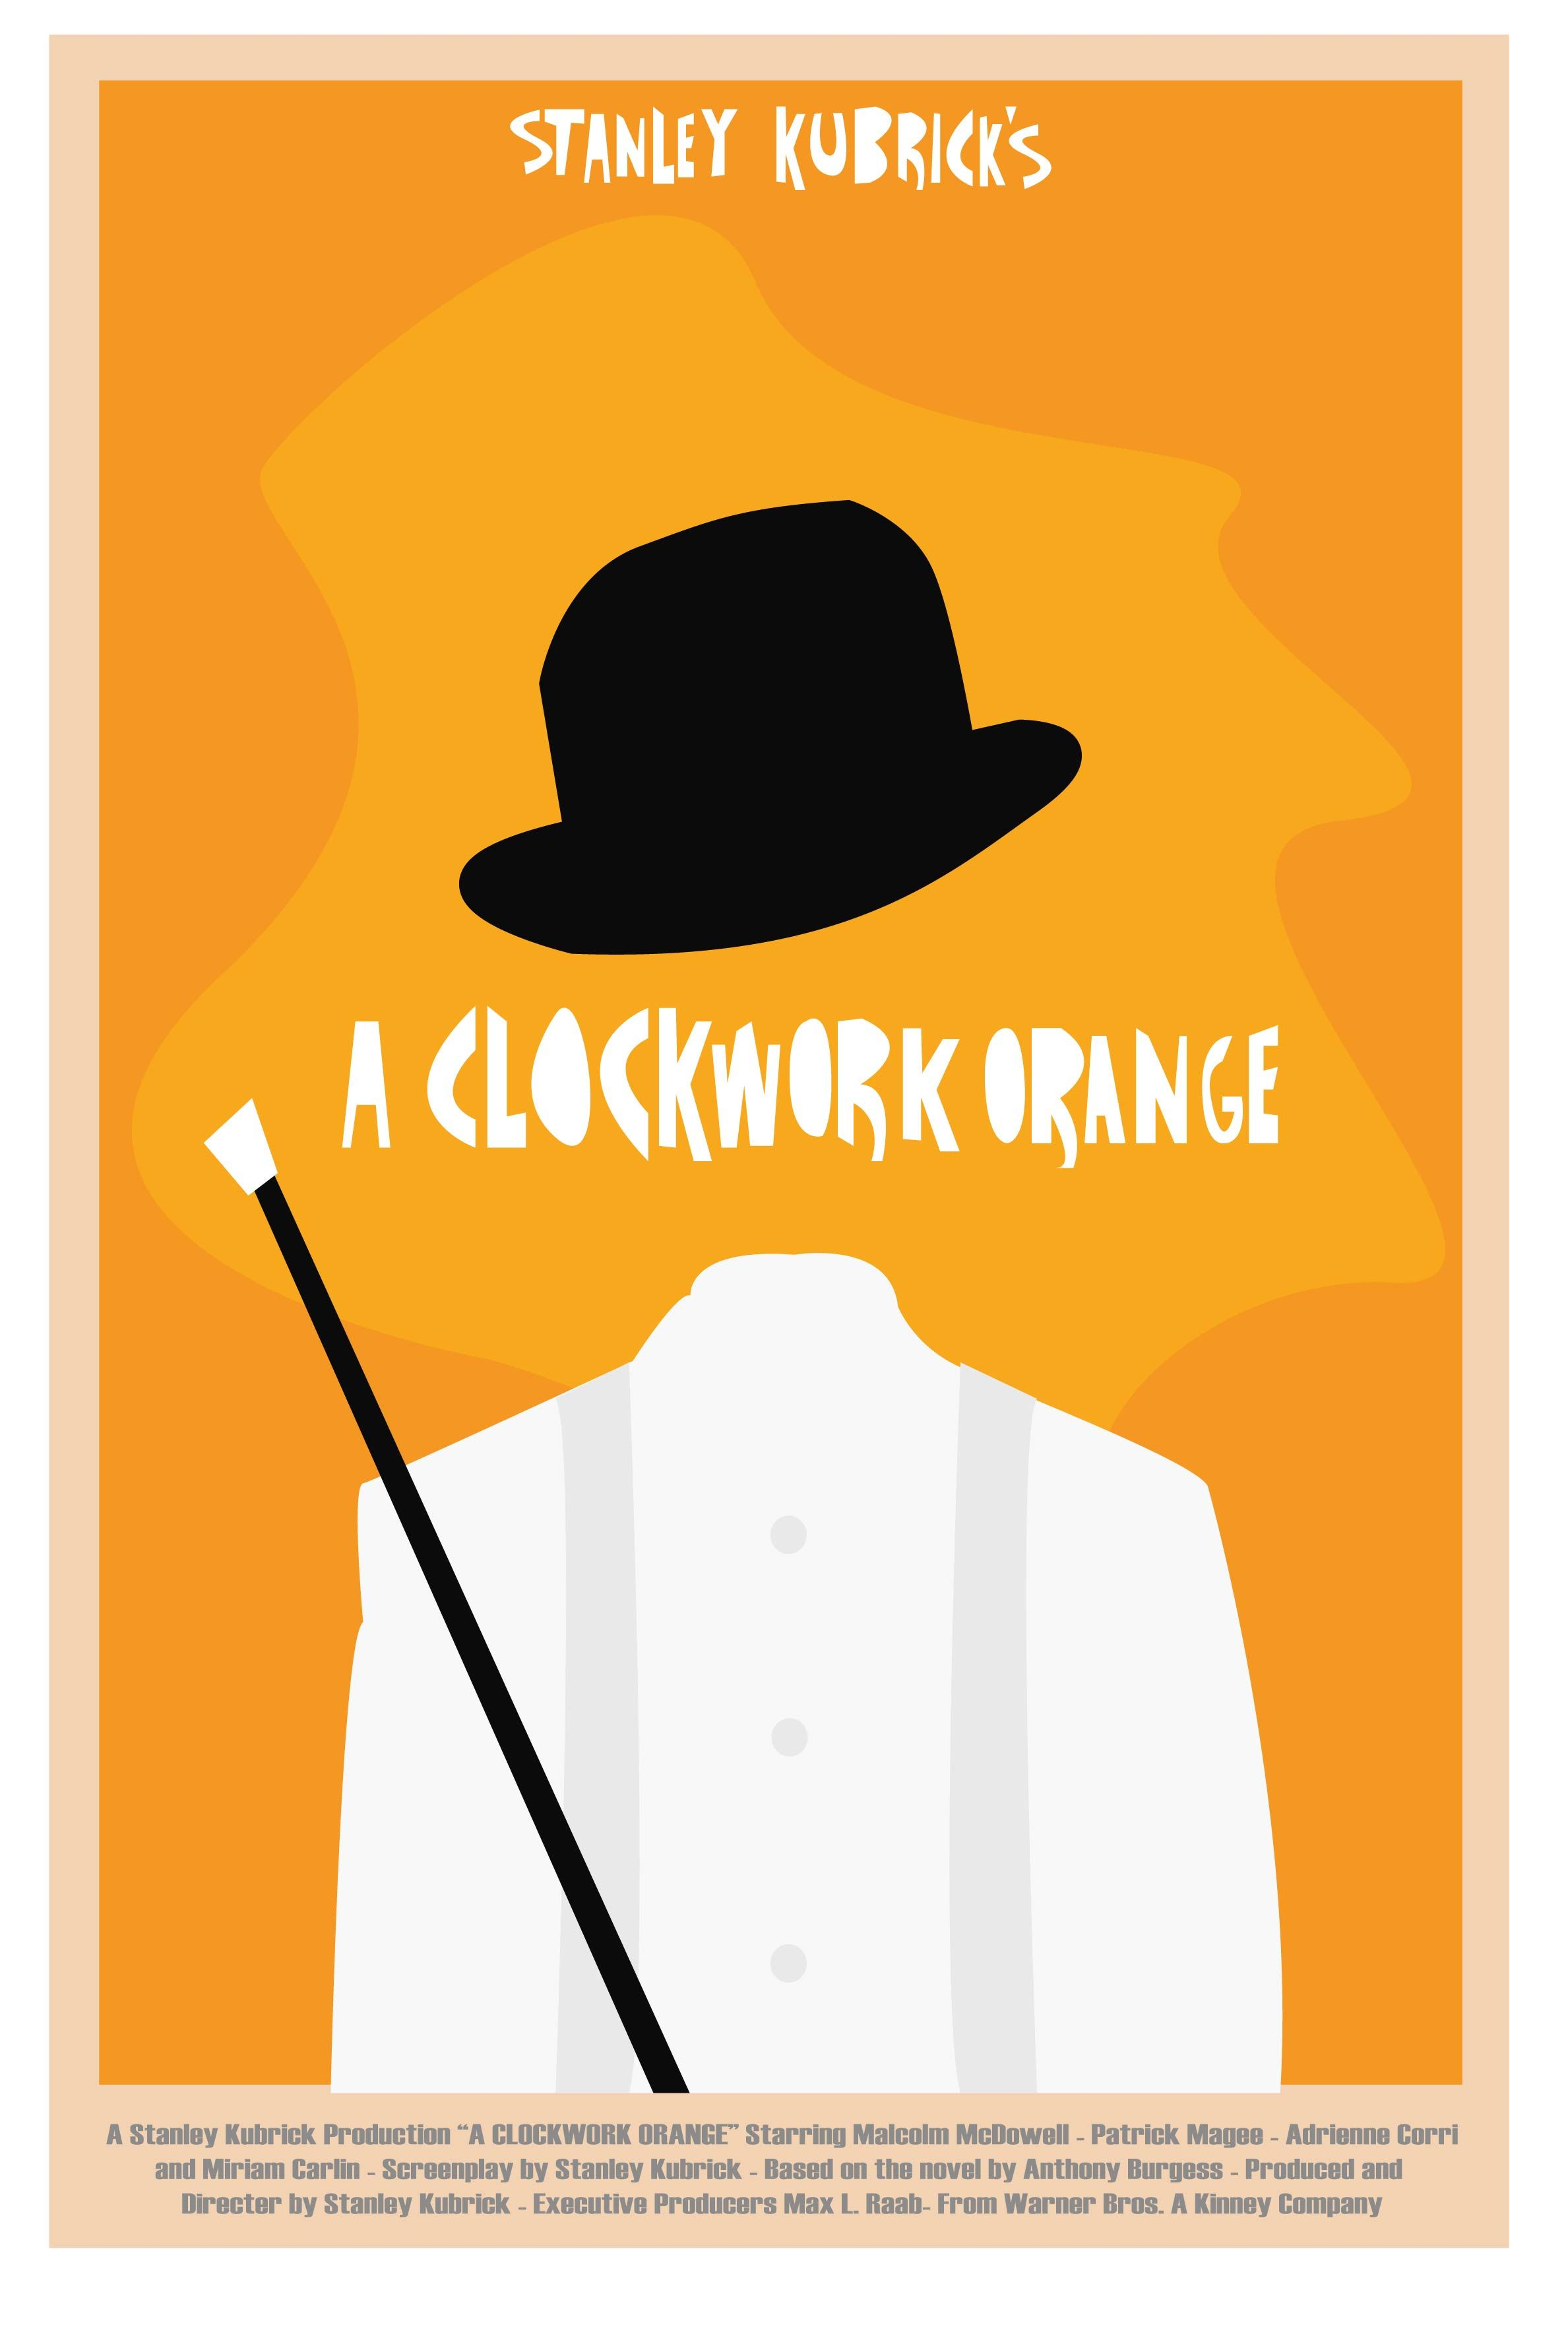 clockwork orange poster minimalist - Google Search ... A Clockwork Orange Minimalist Poster